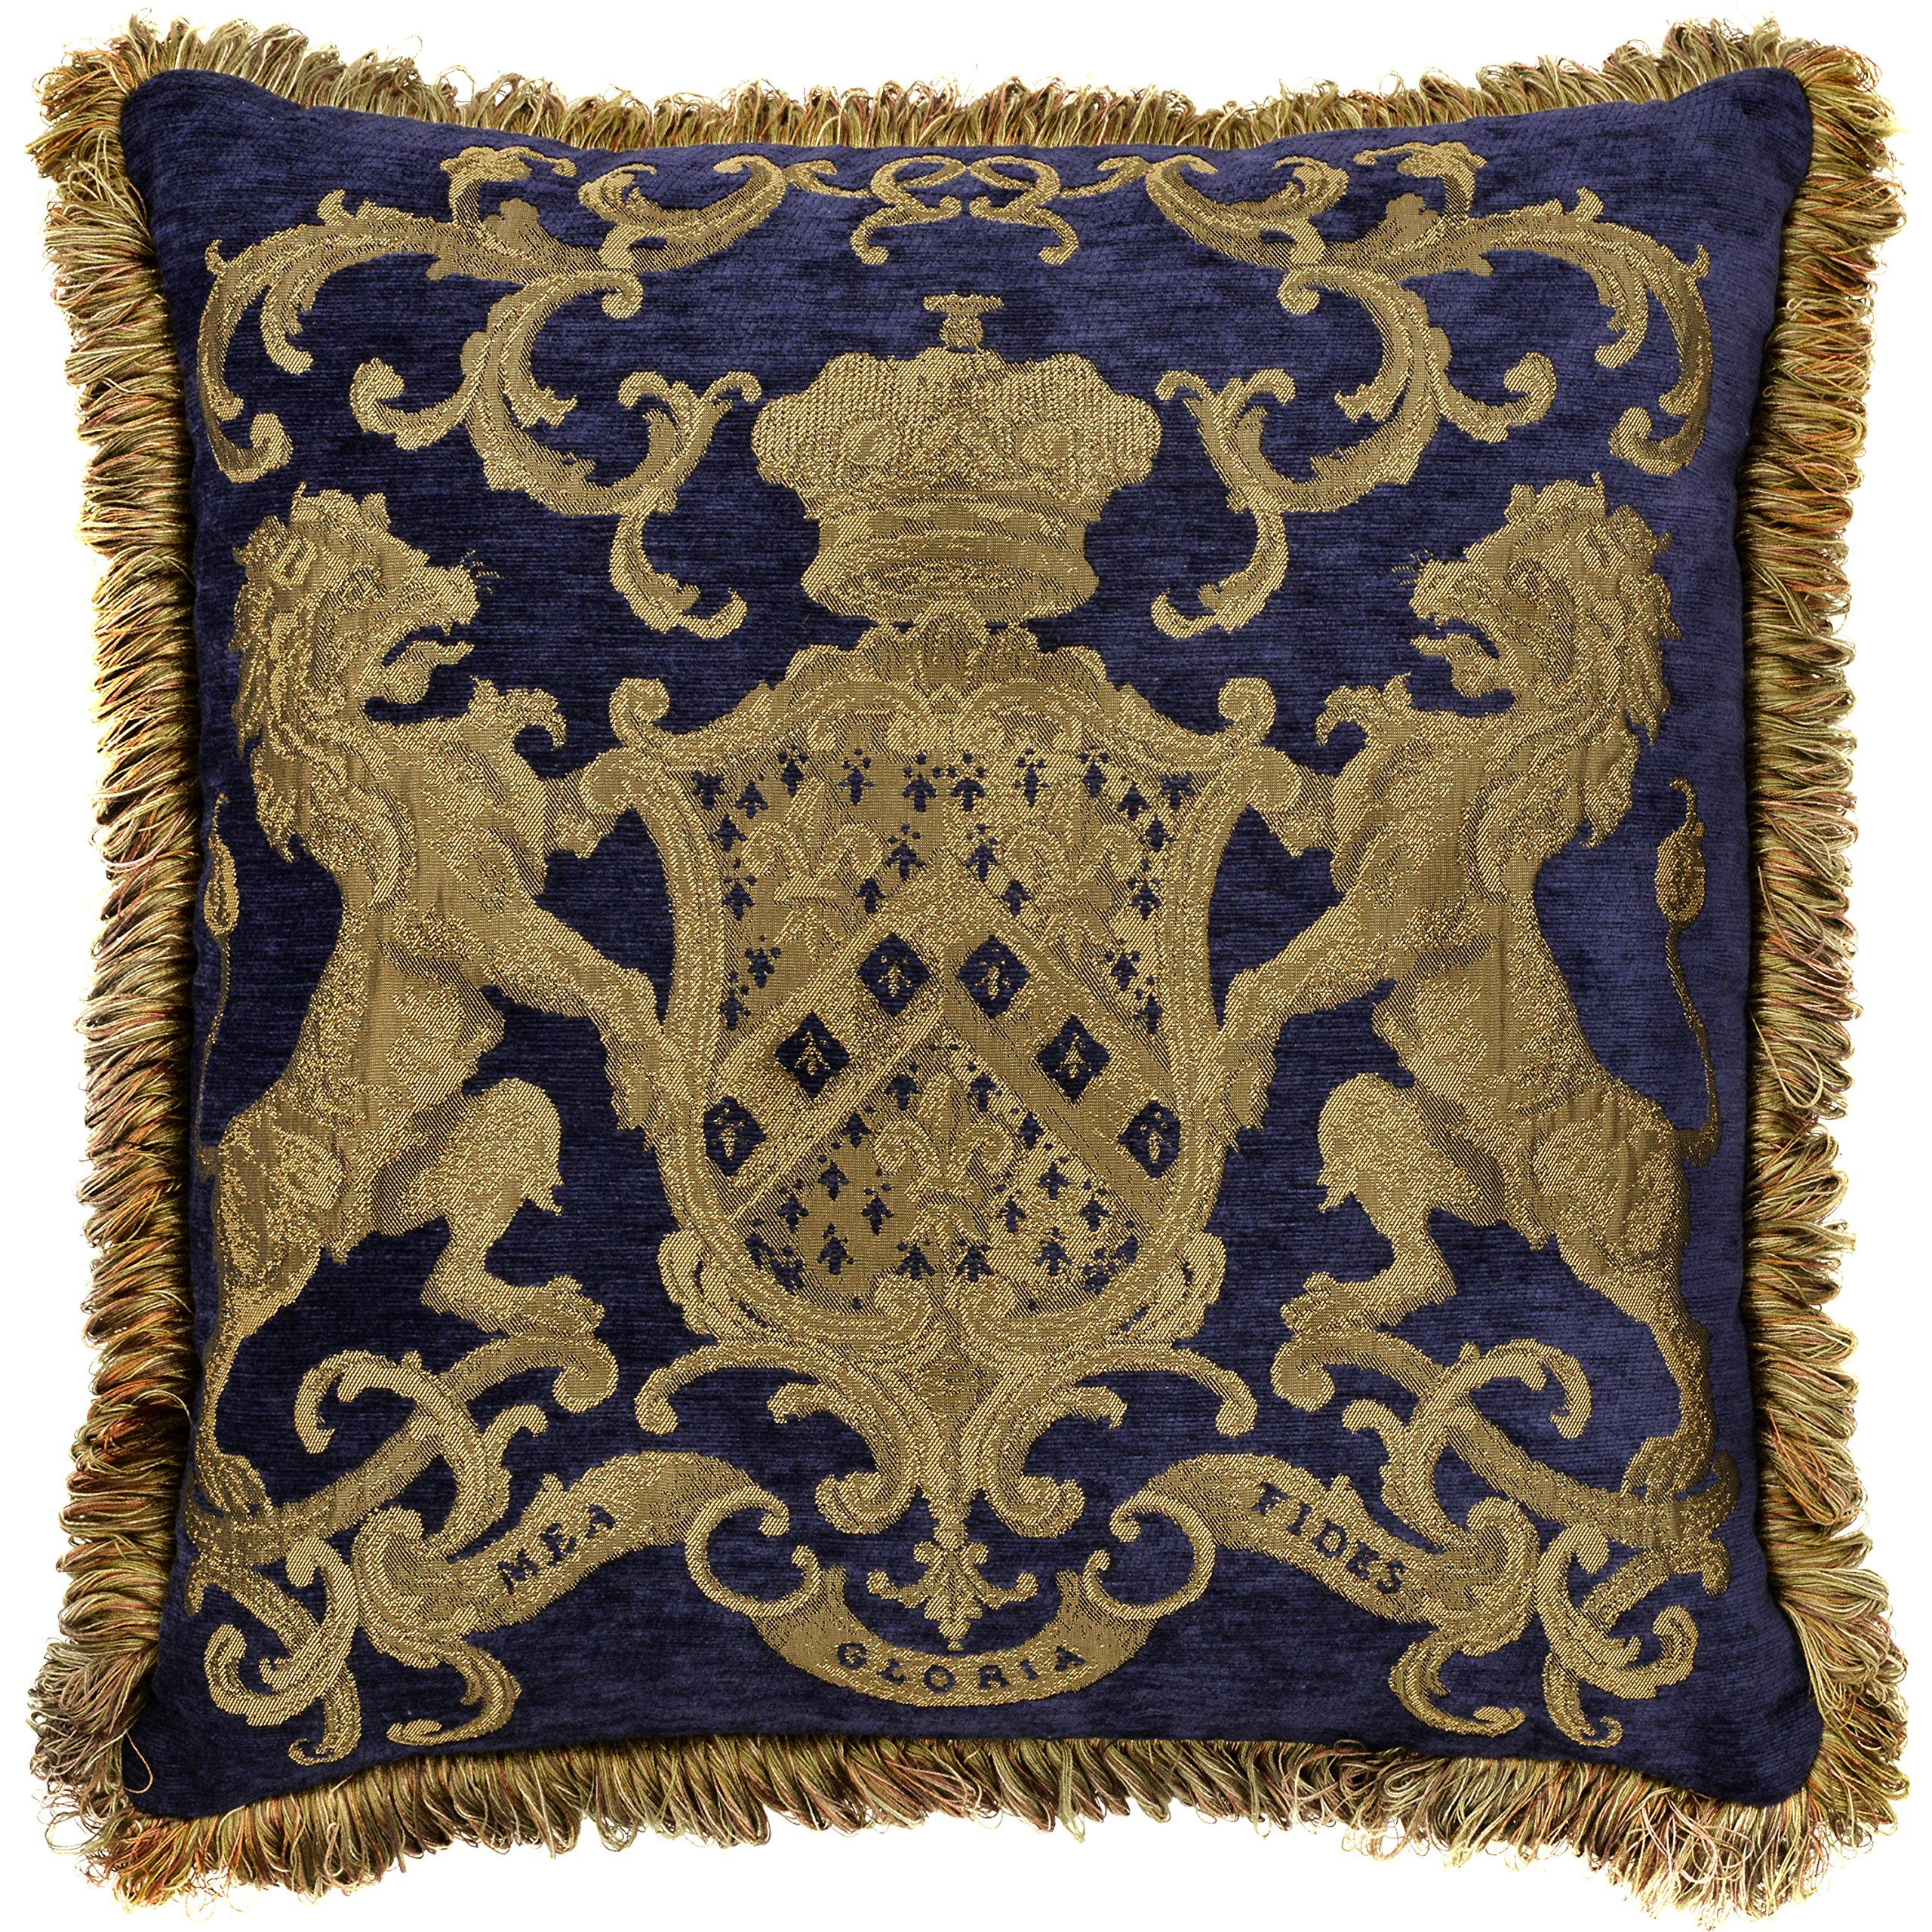 Adorabella Heraldic Royal Blue Pillow - Crest Design With Latin Woven Inscription - My Faith is My Glory - 21'' x 21'' Square Throw Pillow Home Decor Scatter Cushion - Complete With Insert